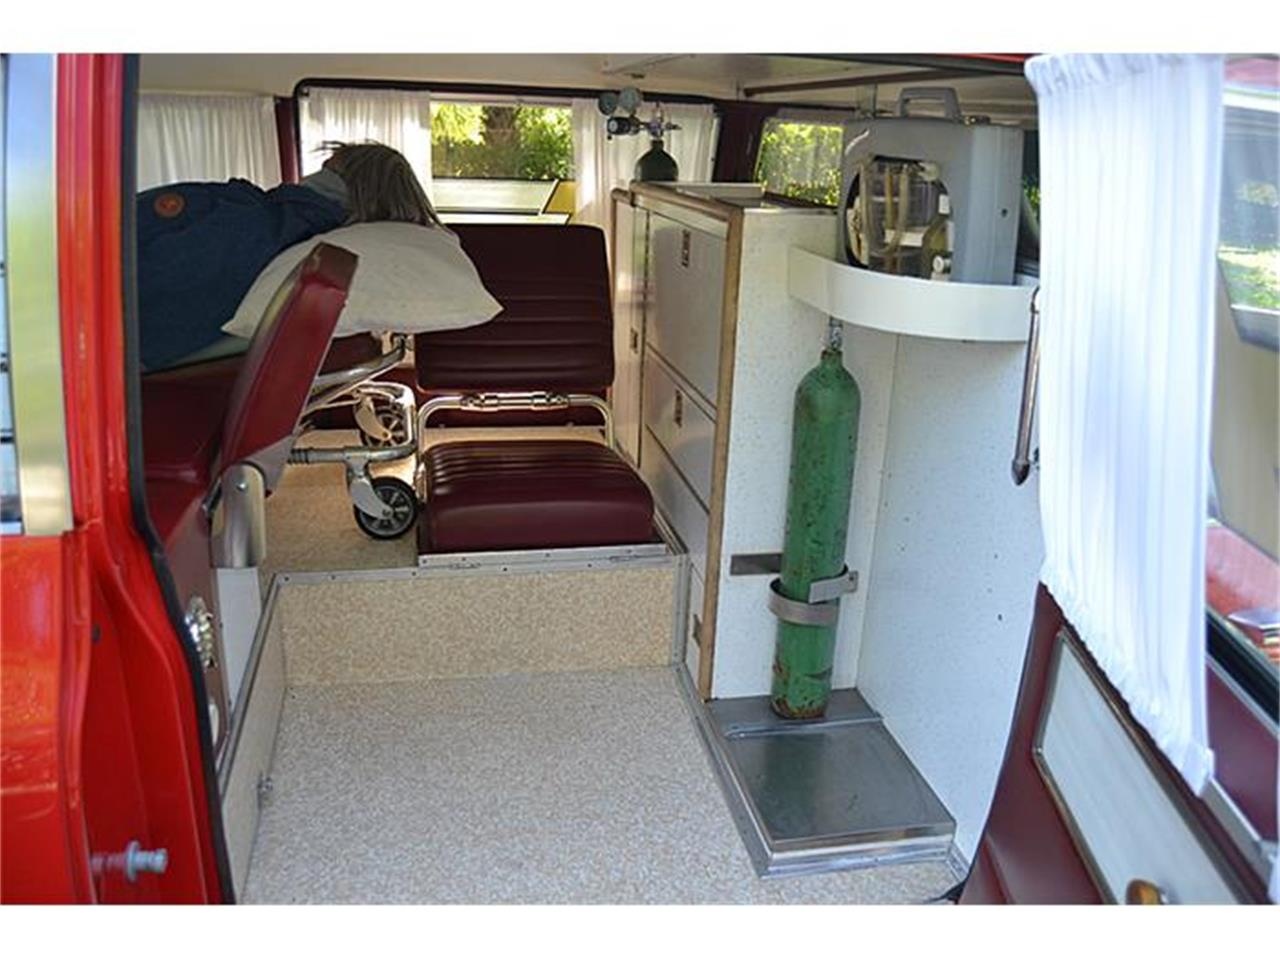 Large Picture of Classic '72 S&S Kesington Professional Ambulance - $47,500.00 Offered by Classic Dreamcars, Inc. - IWNH